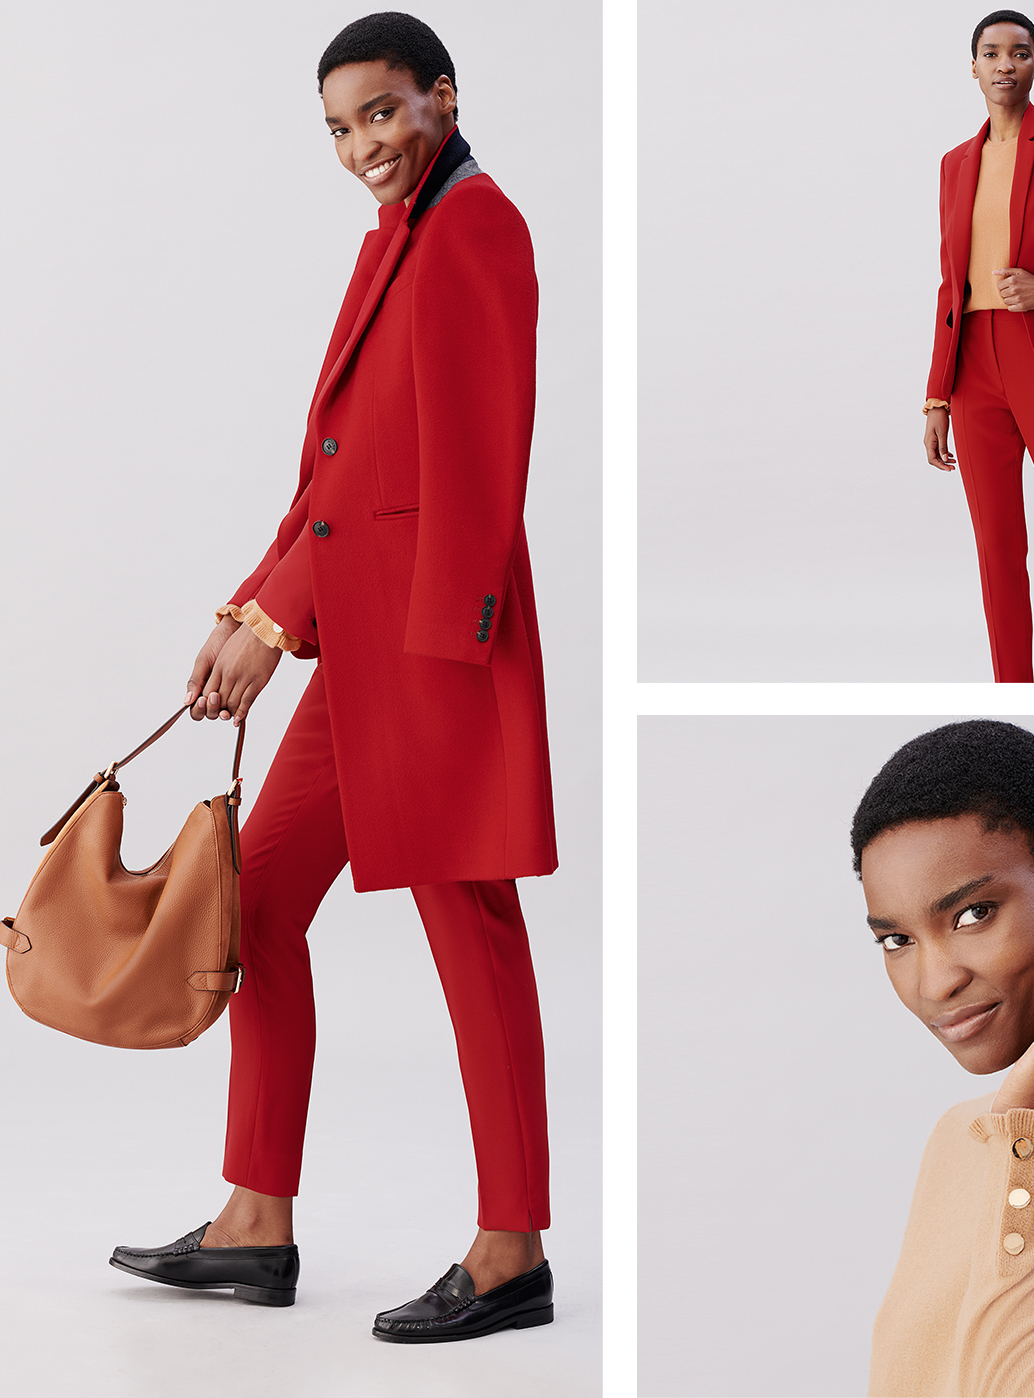 Model wears a bright red tilda wool coat, red tailored trousers, black leather loafers with a brown leather bag